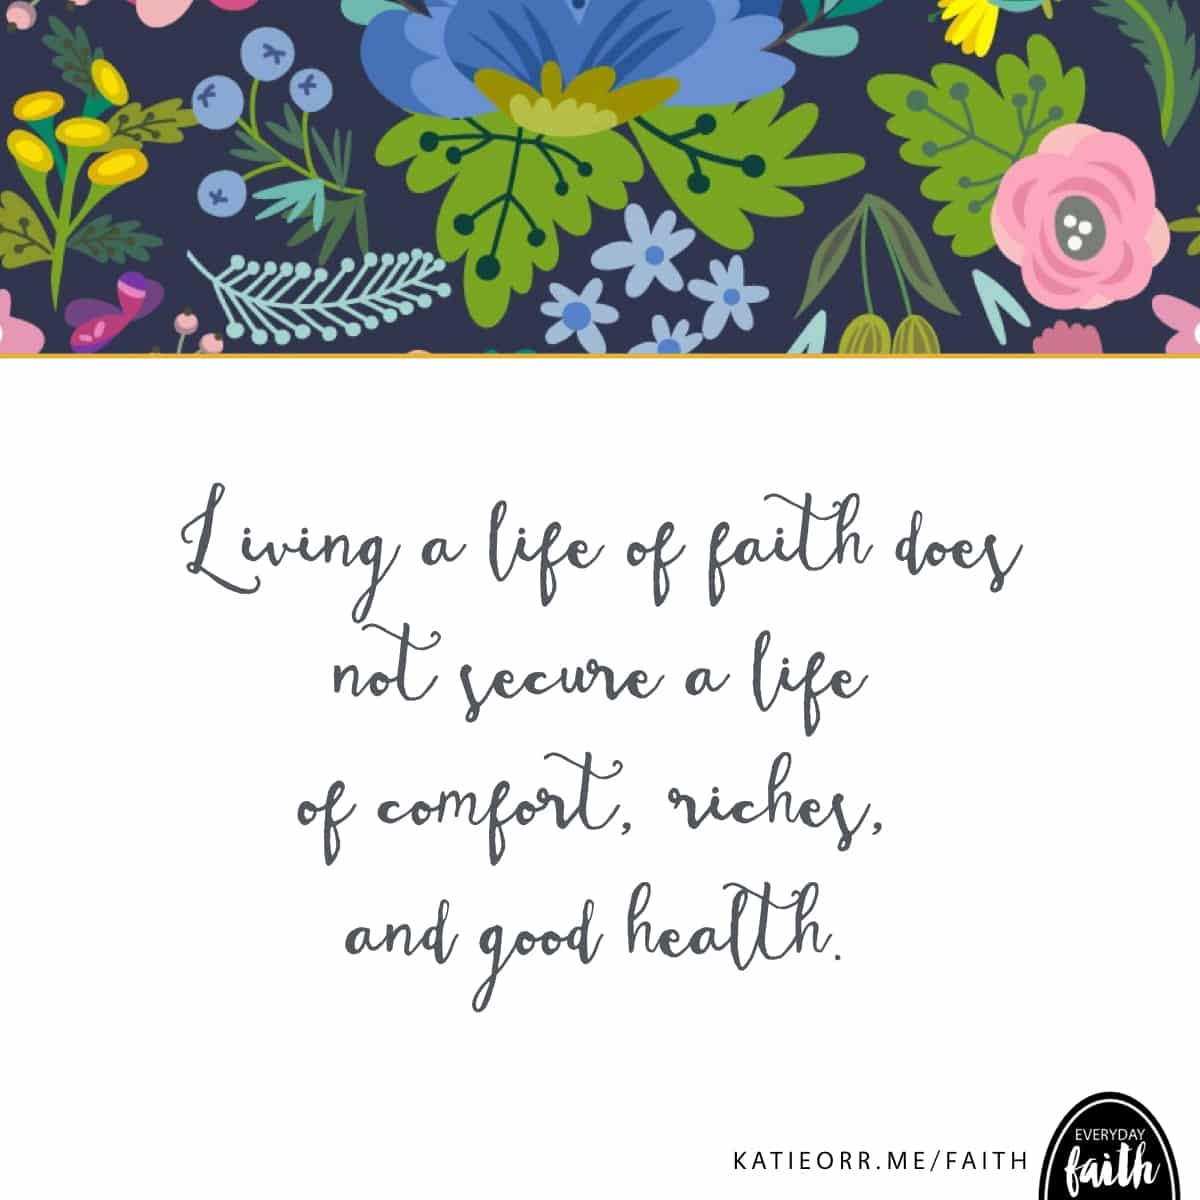 life of faith does not secure comfort